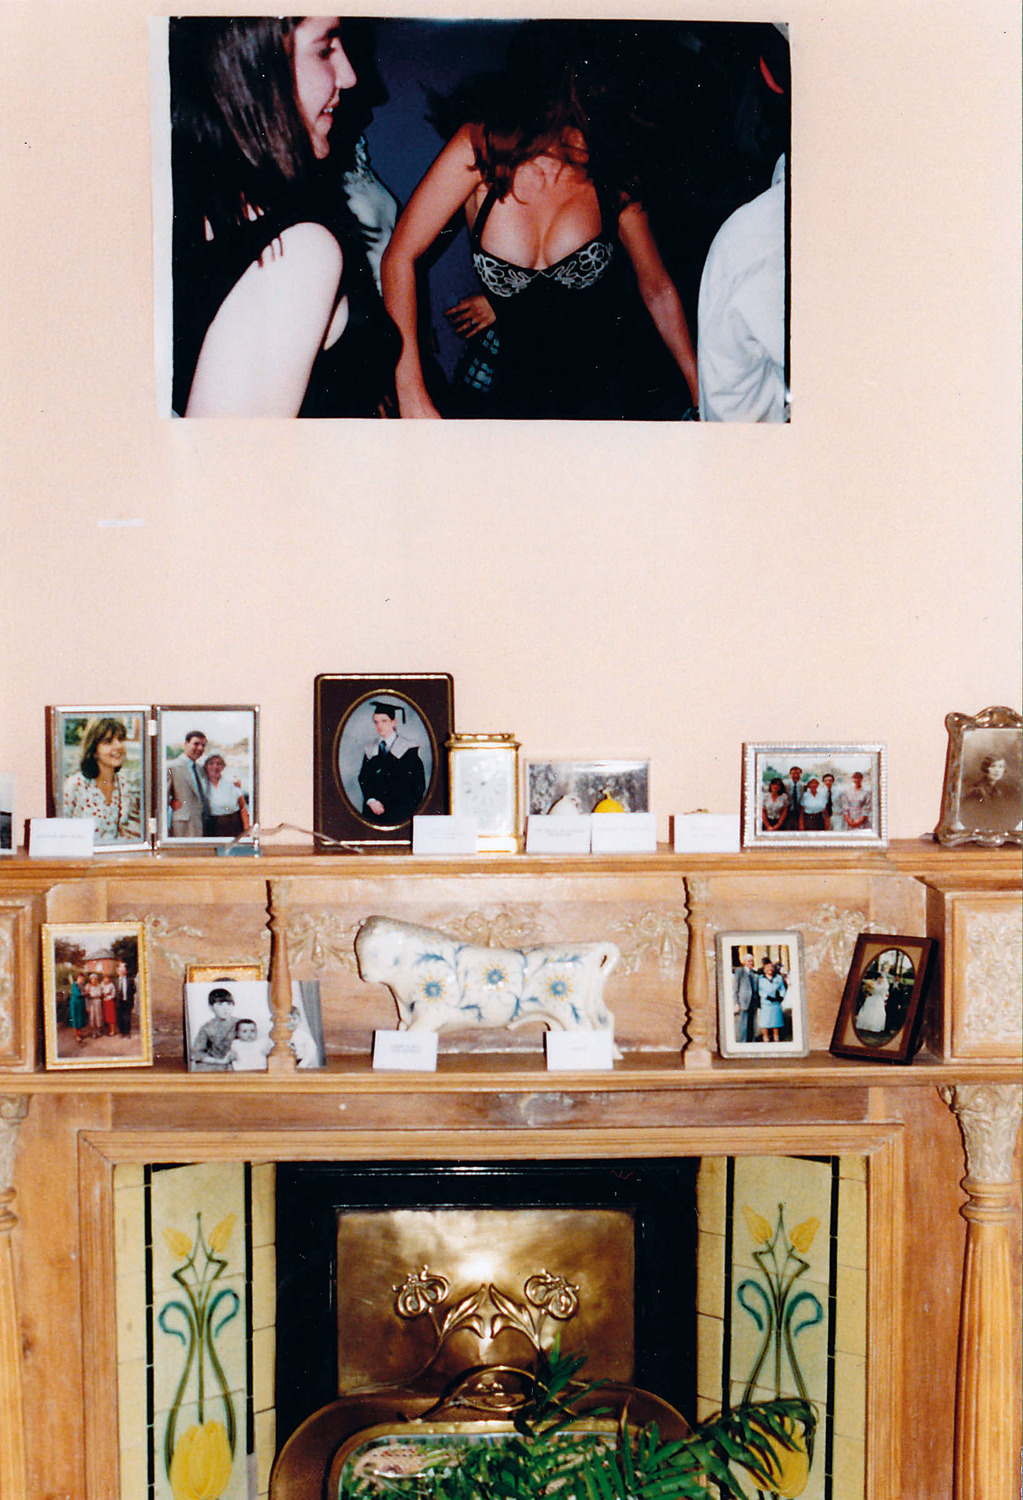 Open Bedroom, 1993. Installation, Deller family home.